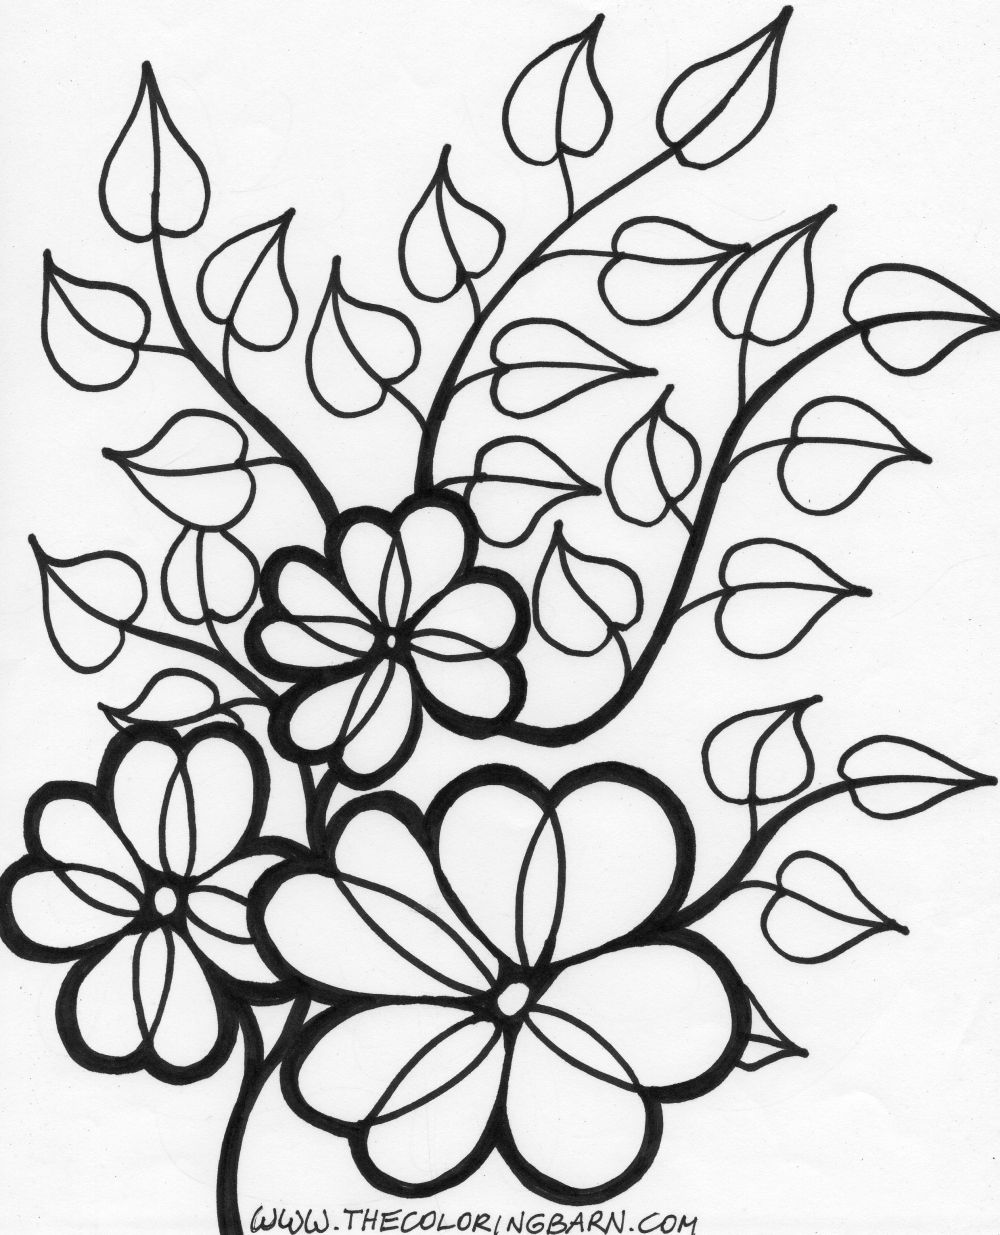 colouring flowers pictures single flower coloring pages at getcoloringscom free colouring pictures flowers